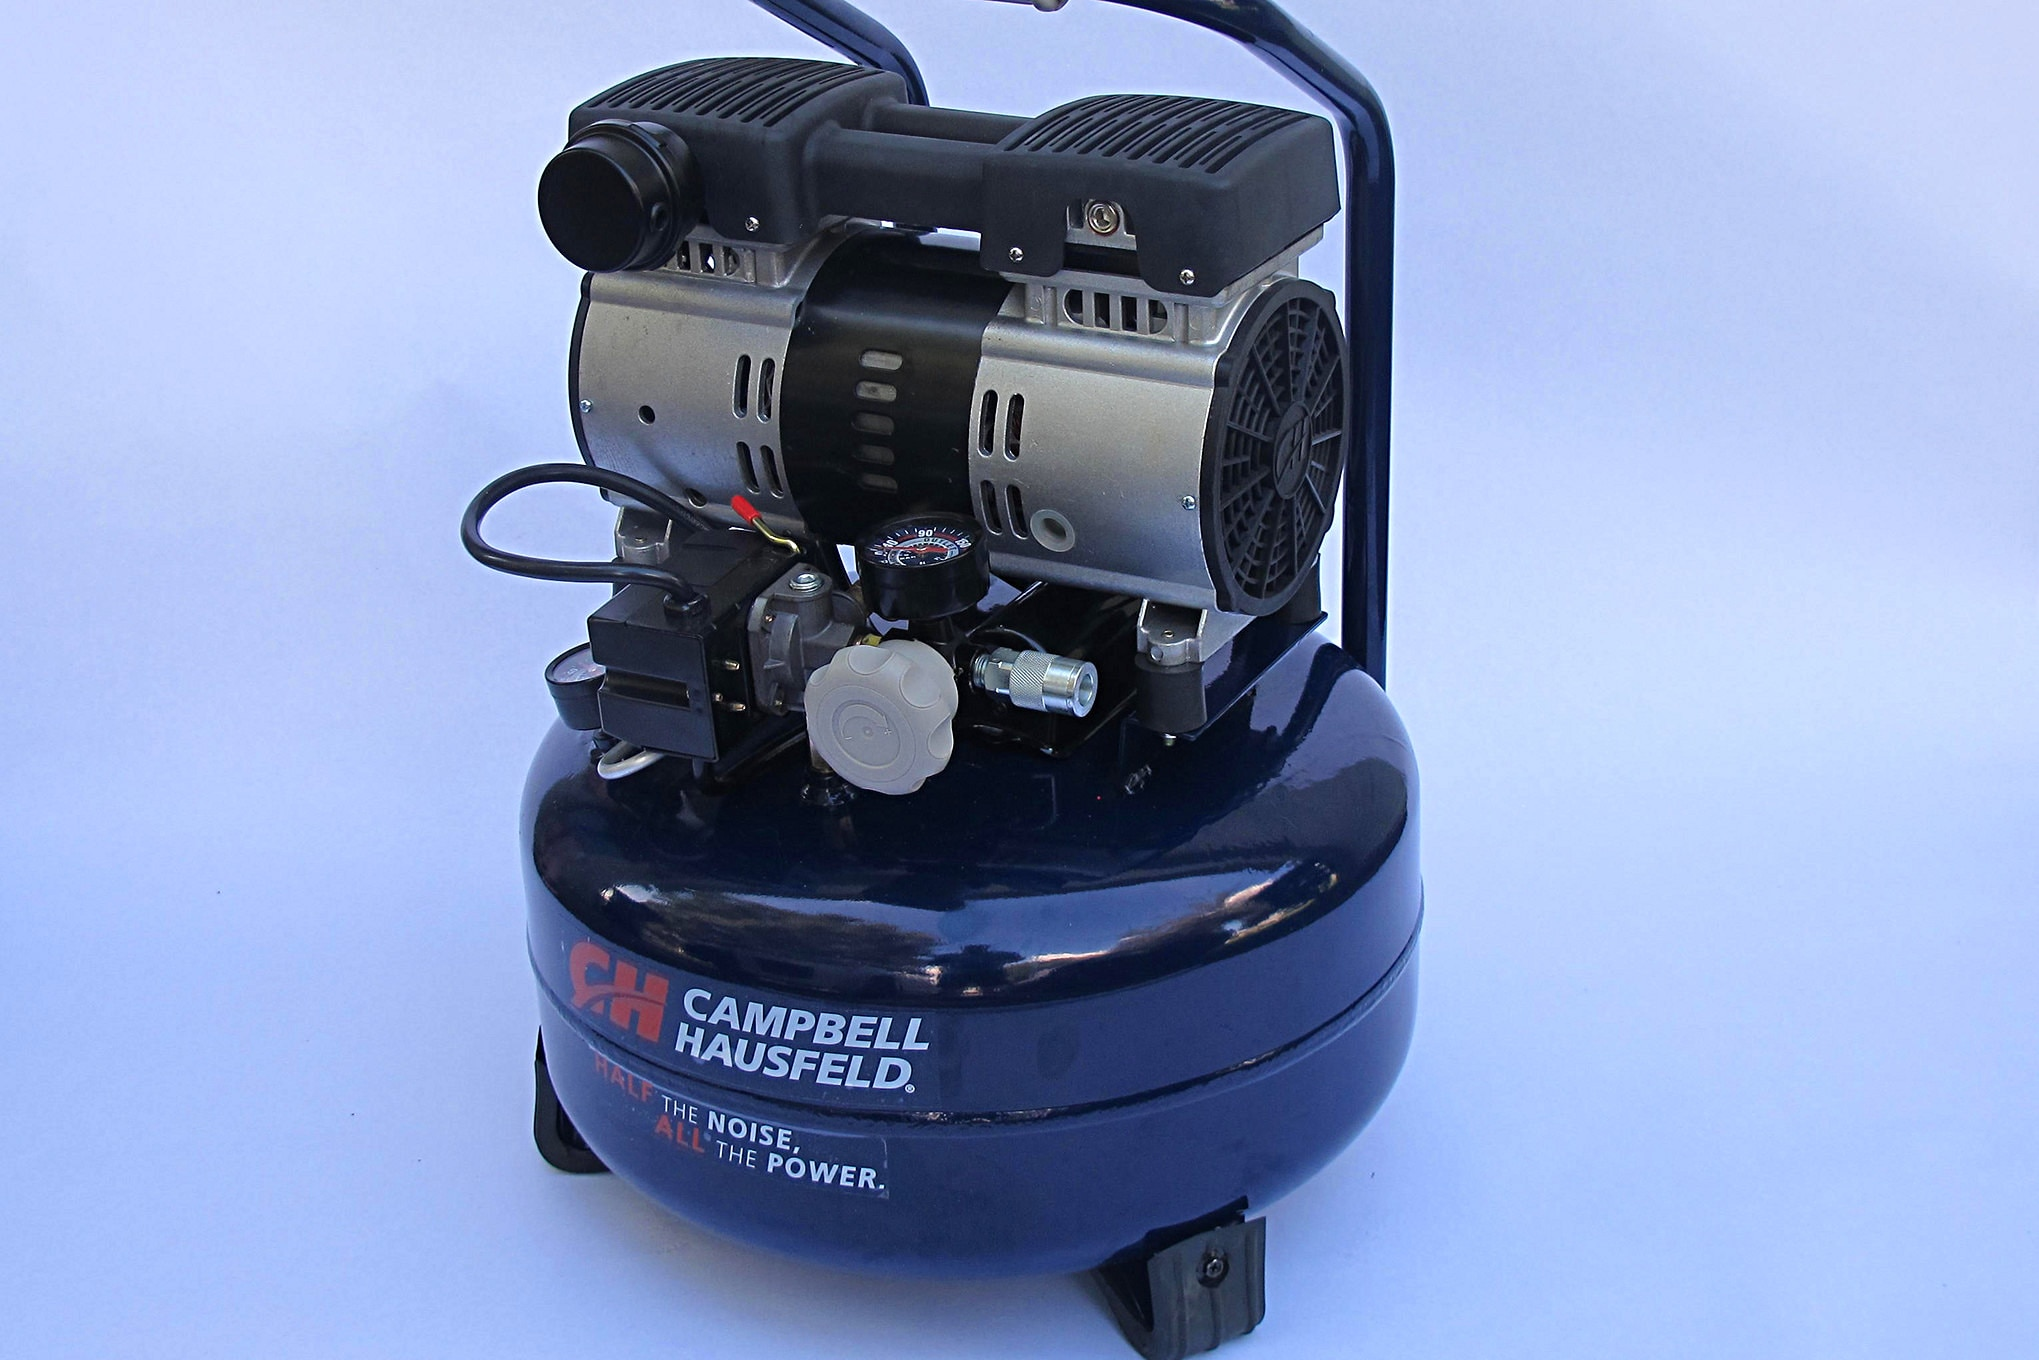 Campbell Hausefeld 6 Gallon Quiet Compressor